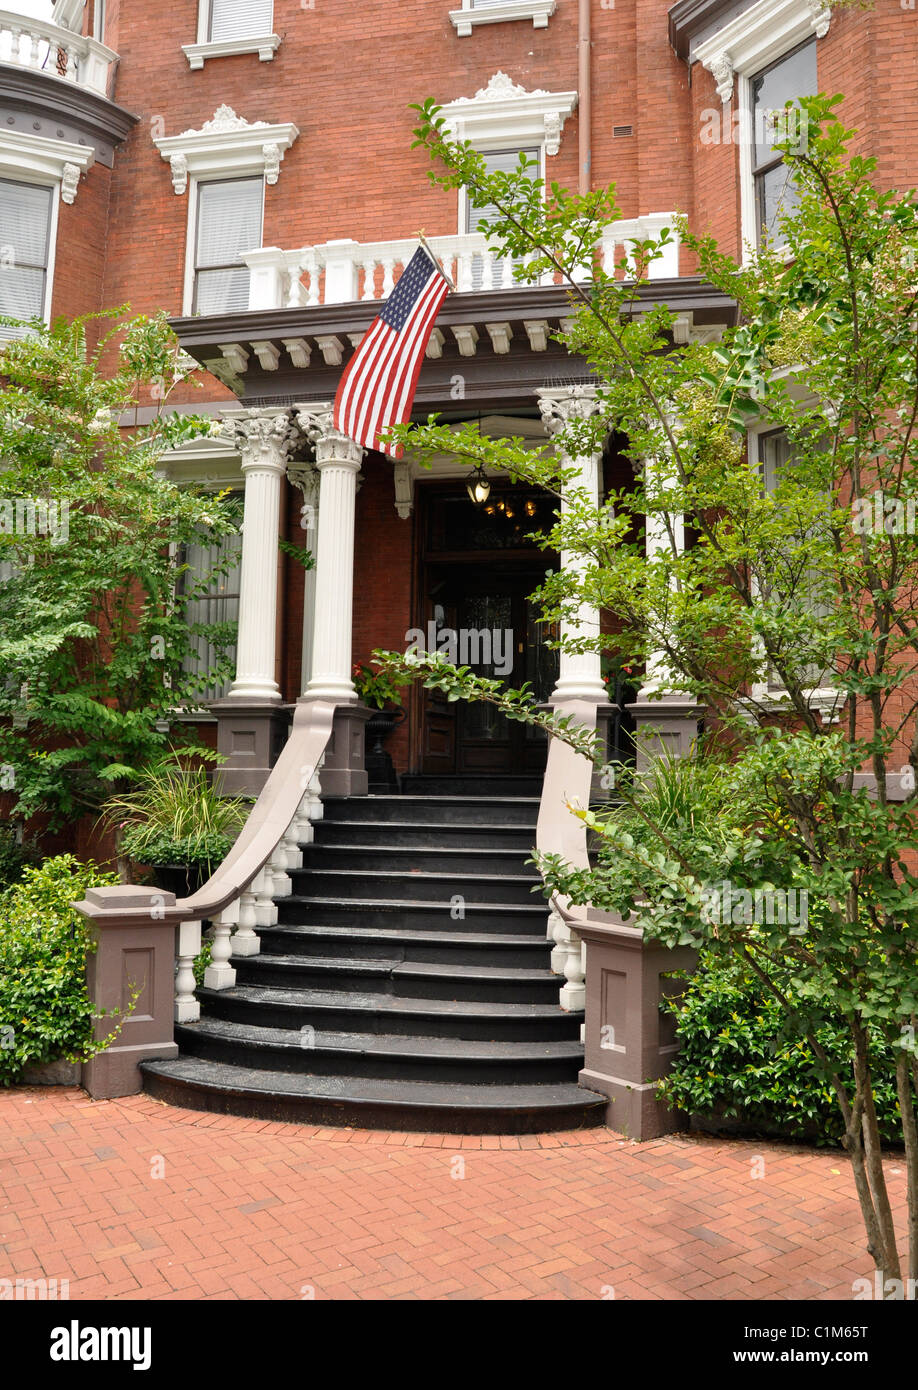 Exterior of an old red brick home with a staircase.  The home is in Savannah, Georgia. - Stock Image